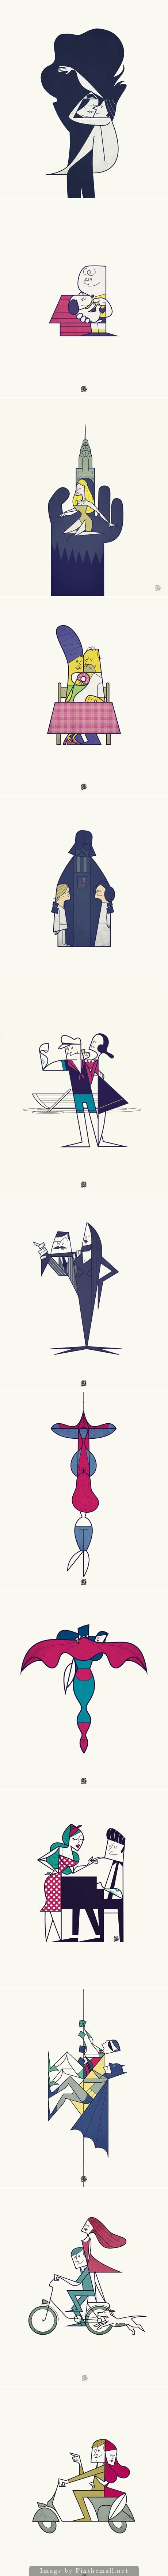 That's Amore! Personal project about love by Ale Giorgini